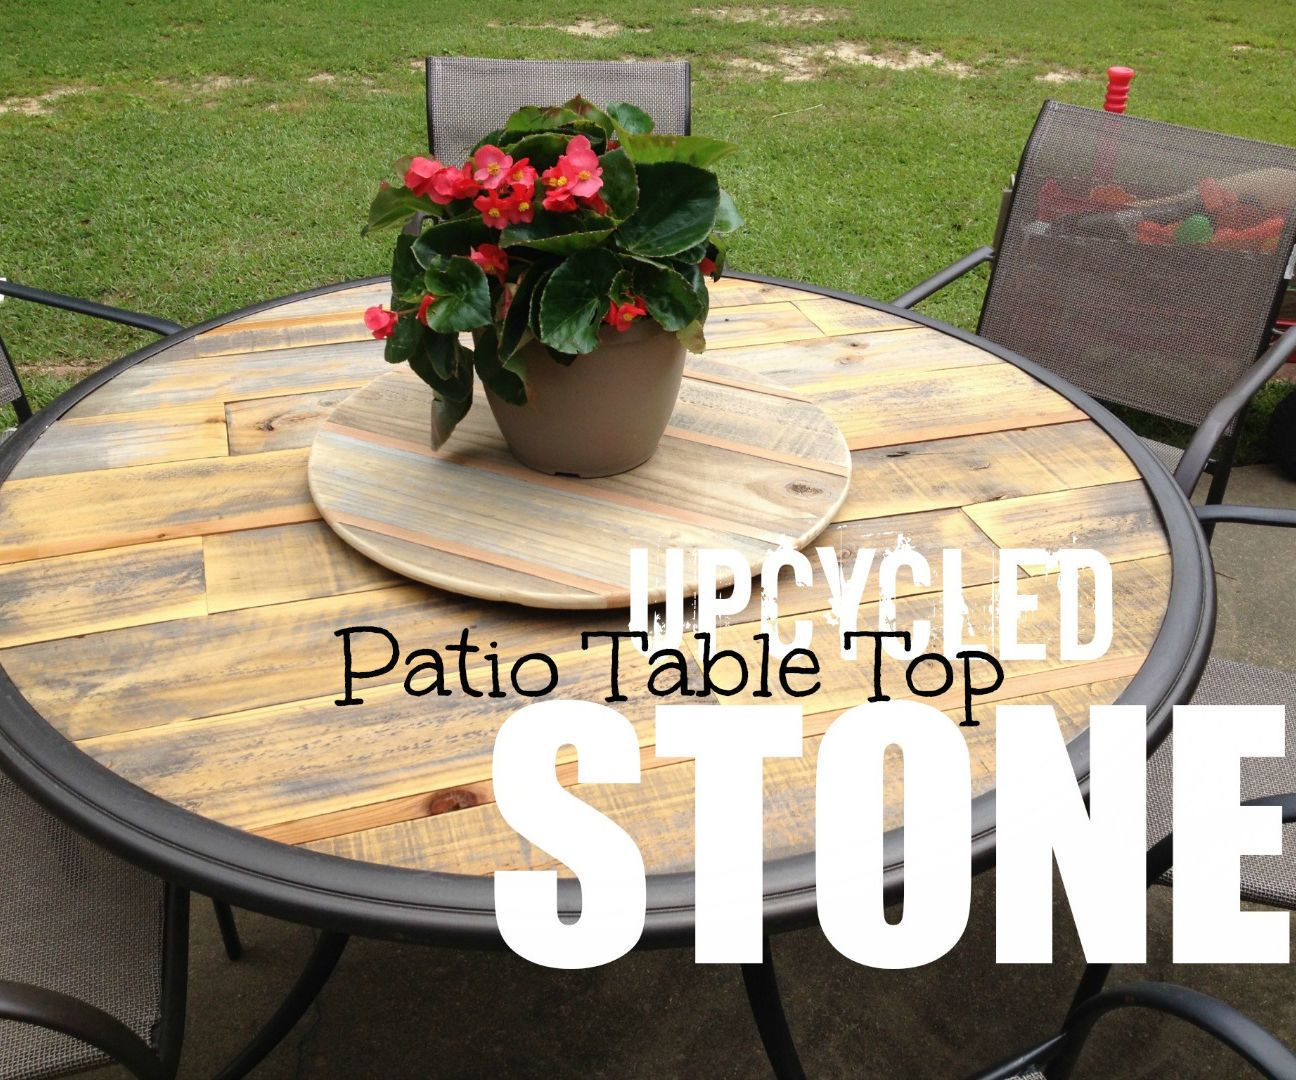 48 outdoor glass table top replacement - A Lot Of Times When The Glass Breaks In Our Patio Tables We Discard Them As